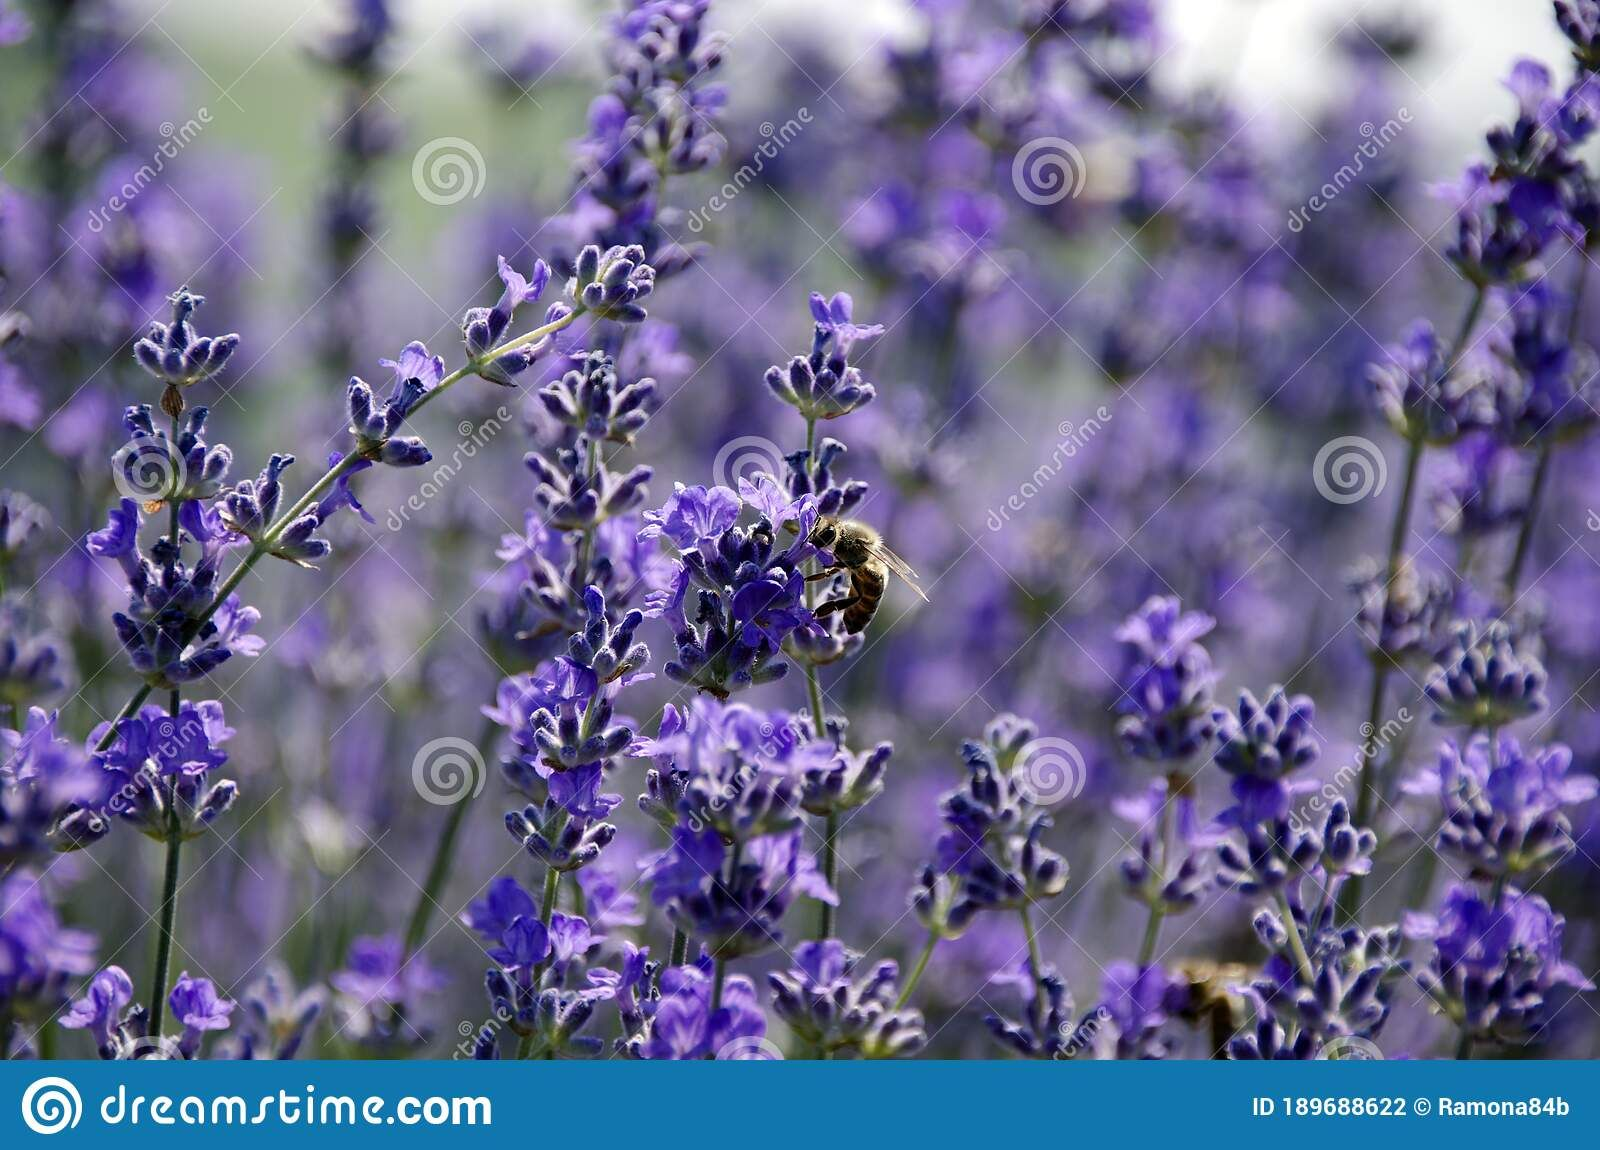 Photo About Details Of A Beautiful Lavender Flower Pollinated By One Bee Incredible Colors And A Fairytale Atmosphere Image Of L In 2020 Lavender Flowers Flowers Bee